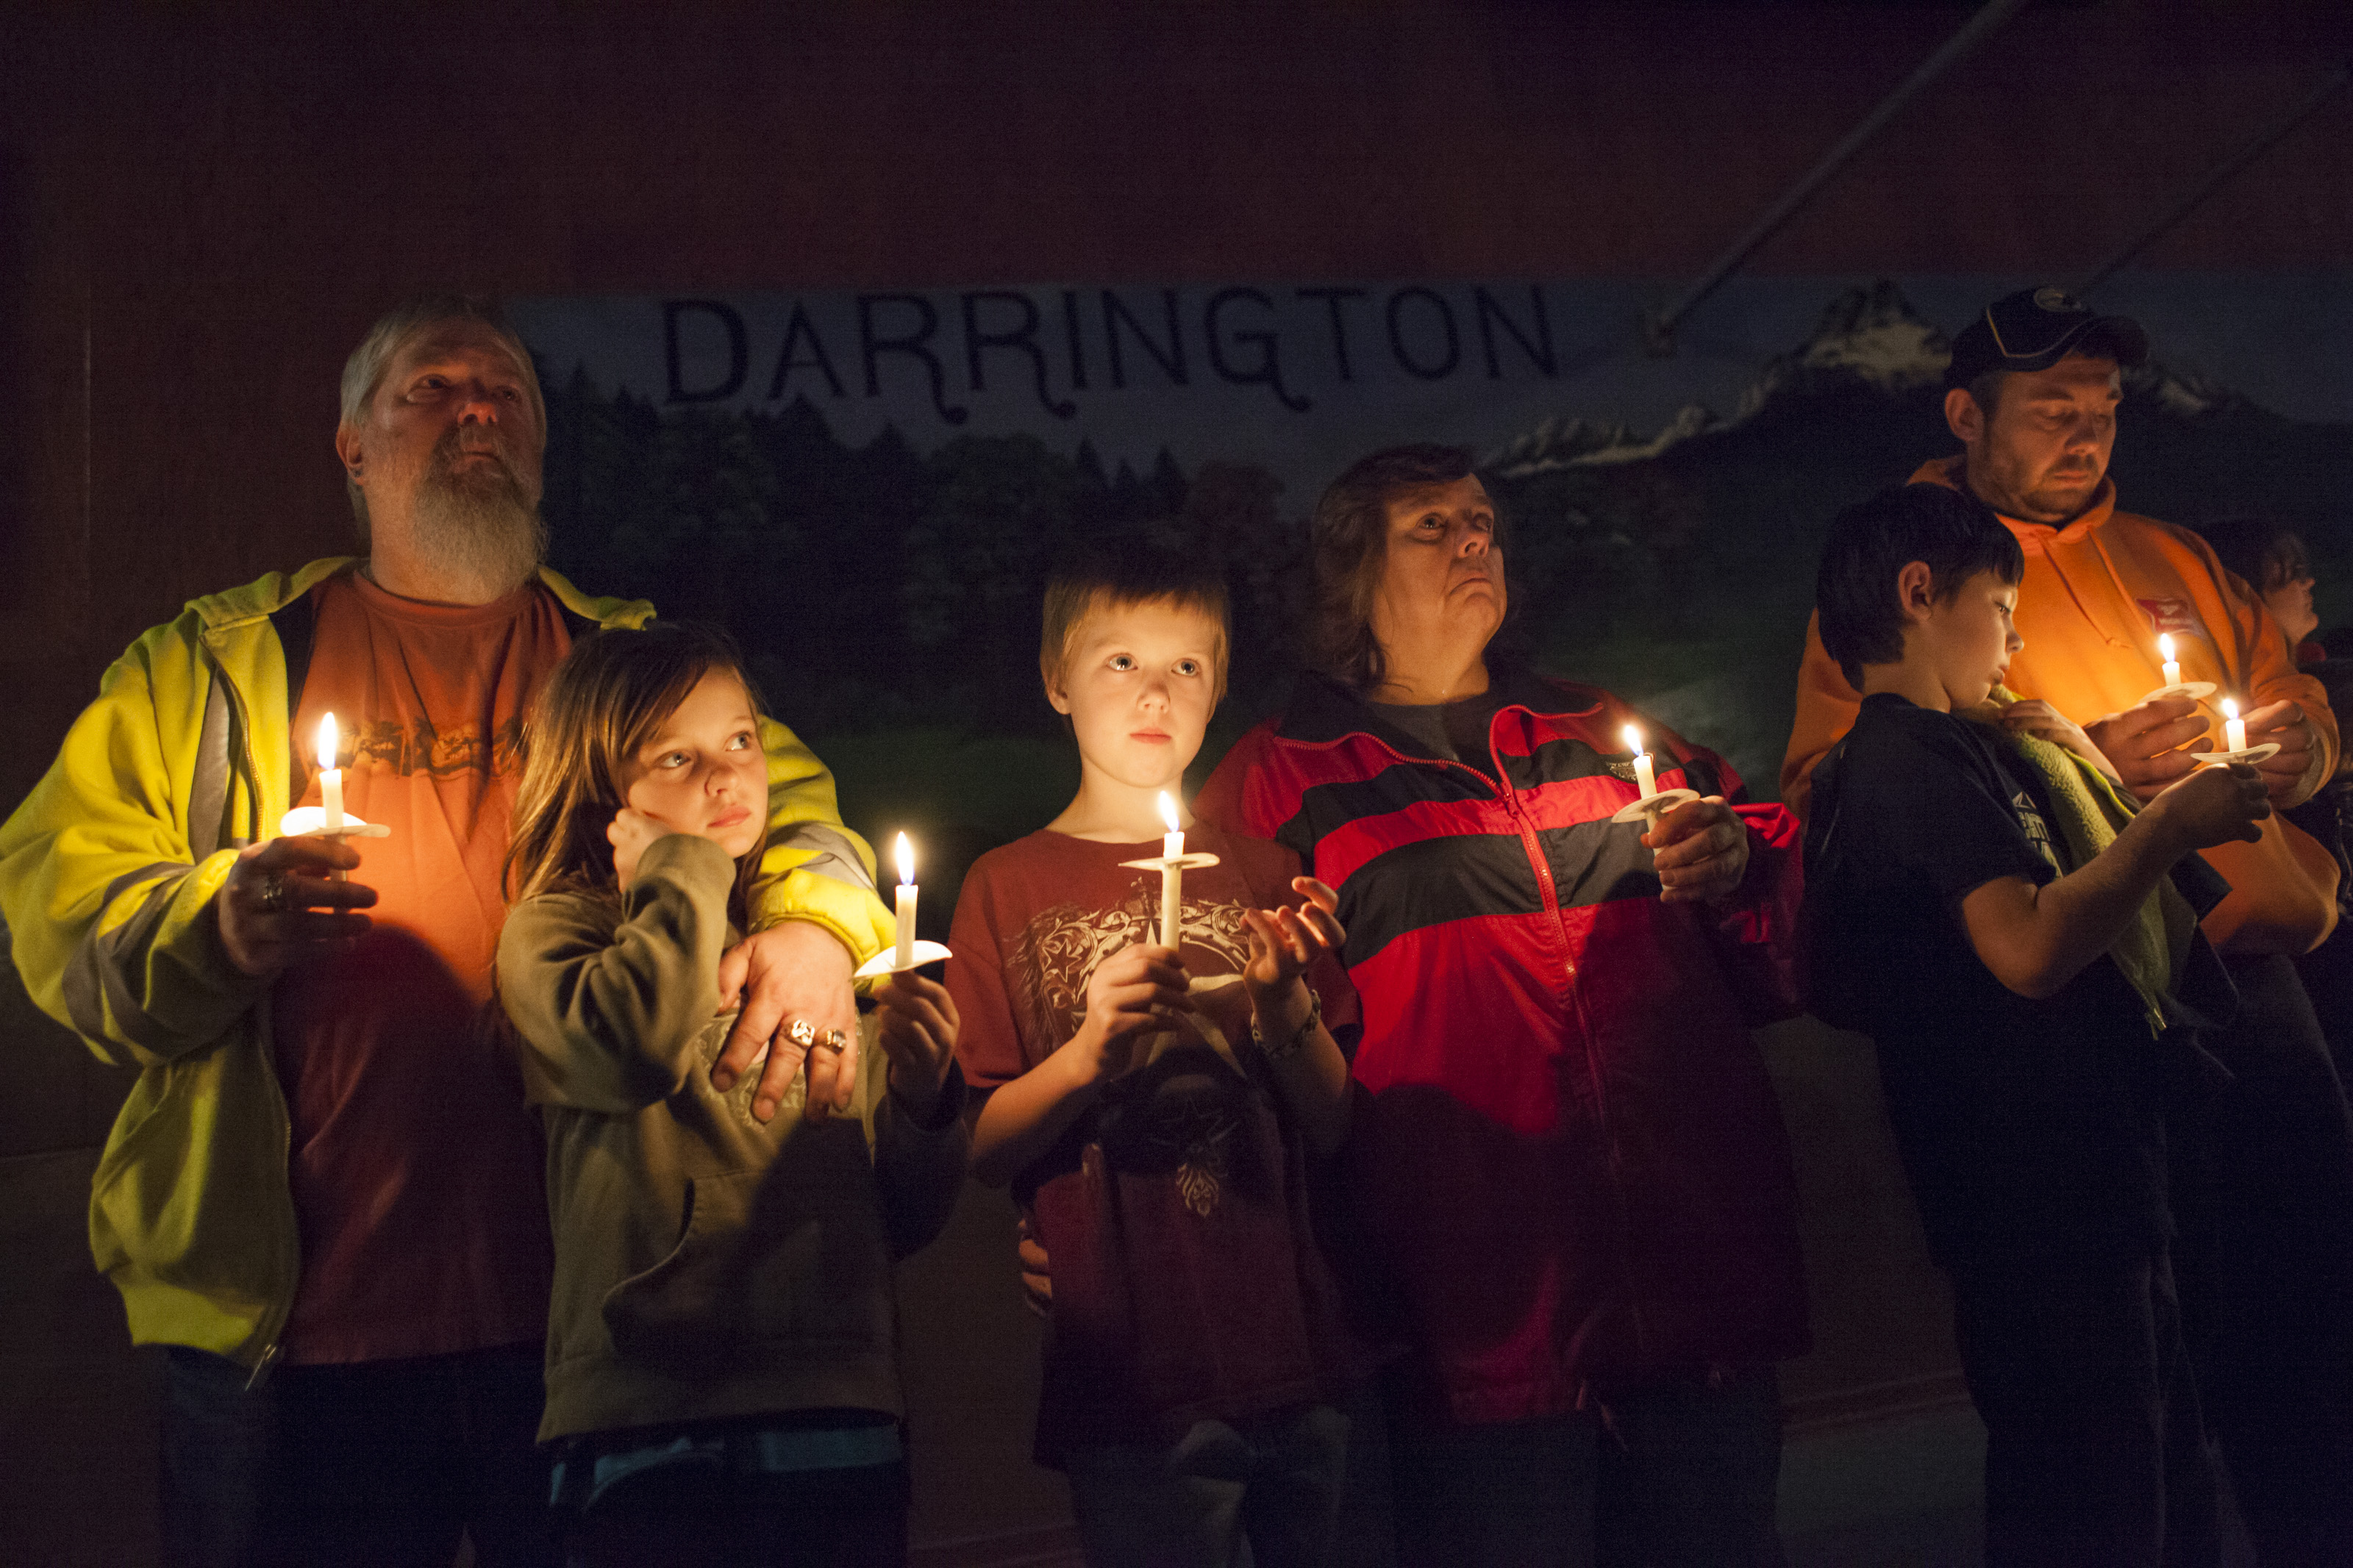 People hold candles during a vigil for mudslide victims at the Darrington Community Center on April 5, 2014 in Darrington, Wa.